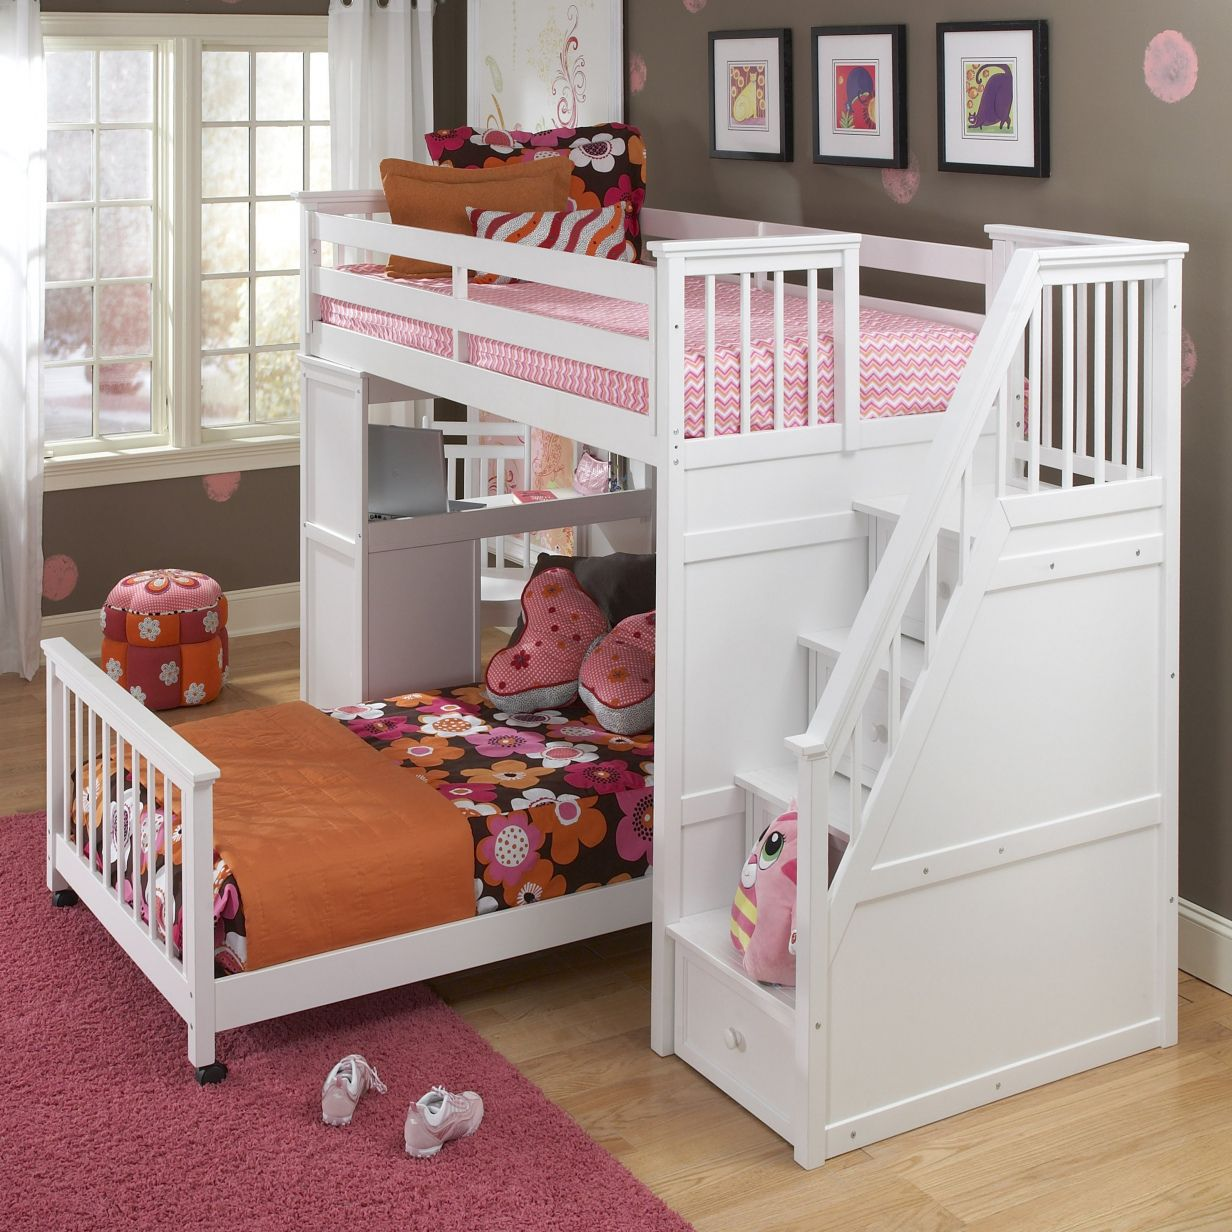 Inspirational White Bunk Beds for Sale Check more at http